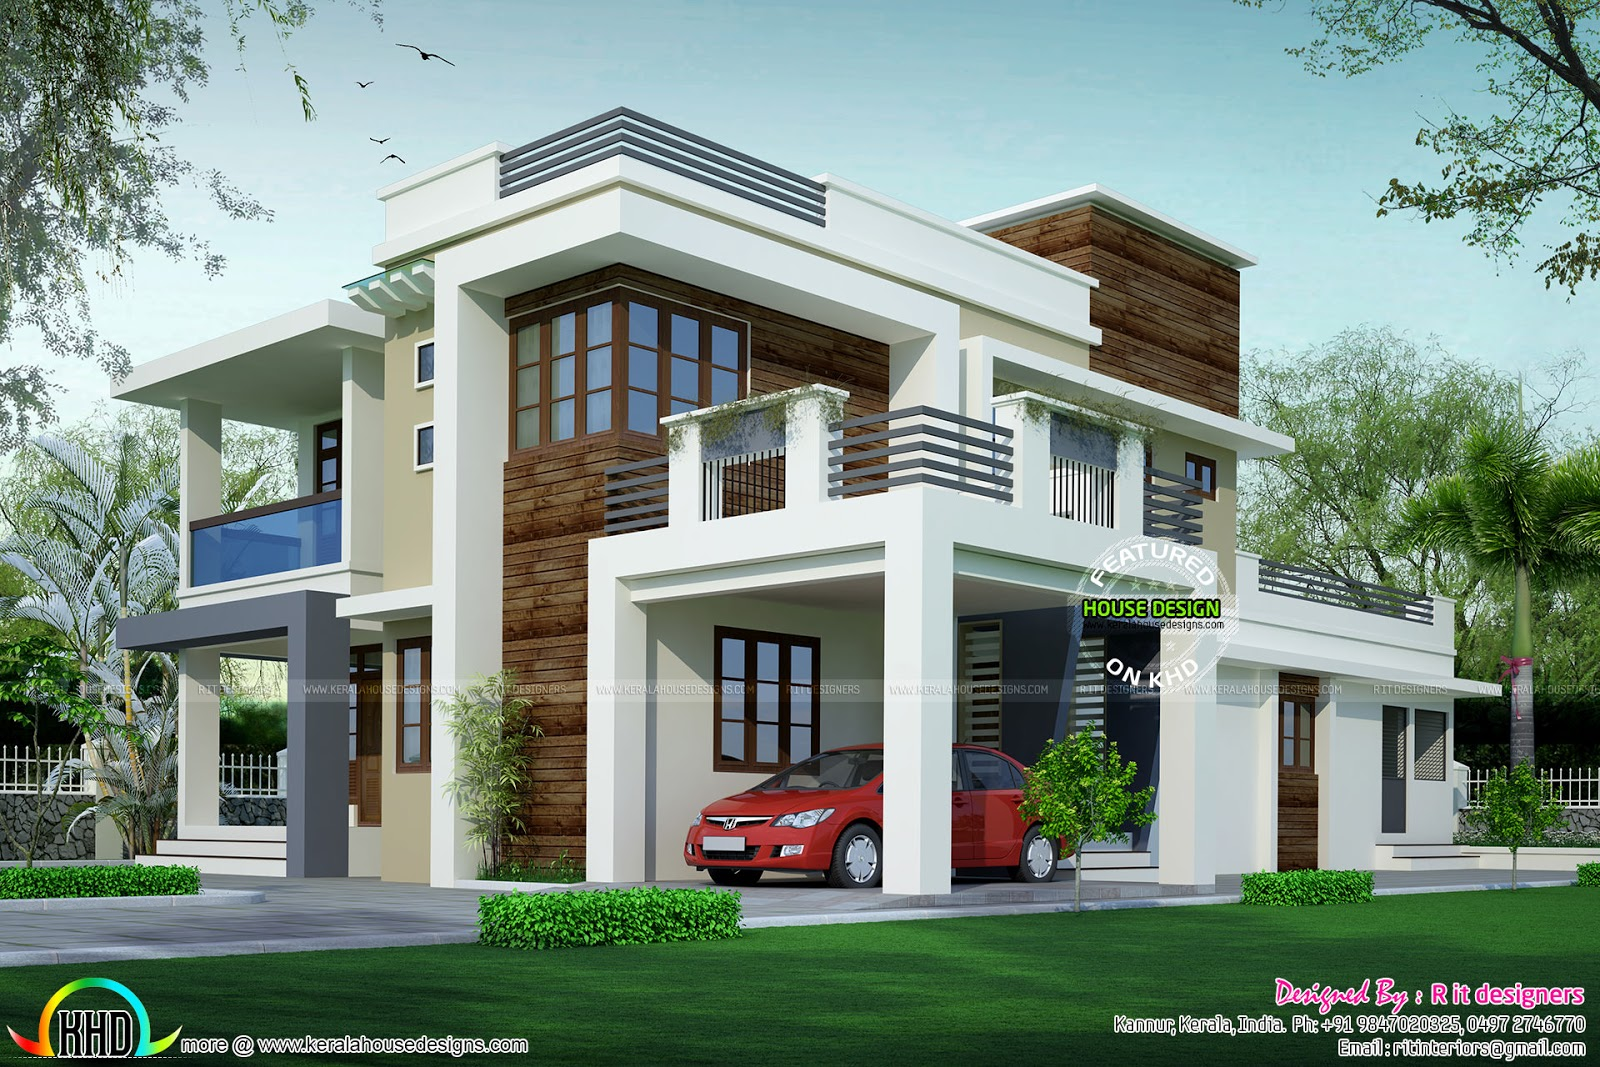 House design contemporary model kerala home design and for Model home plans